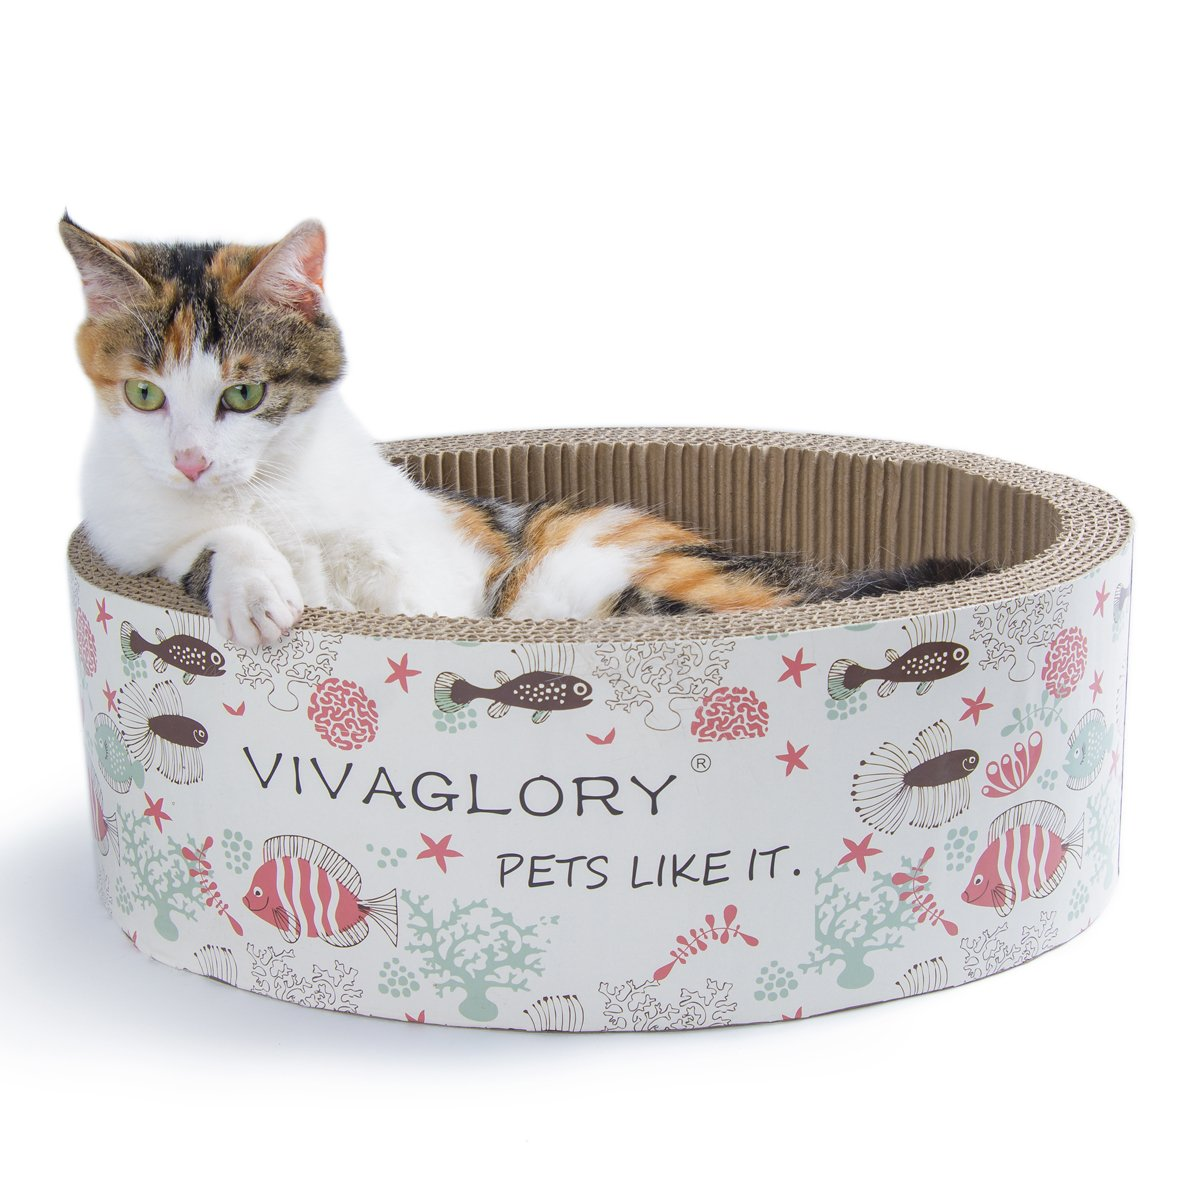 Vivaglory Oval Cat Scratcher Scratching Bed Lounge Durable Cardboard Pad with Catnip